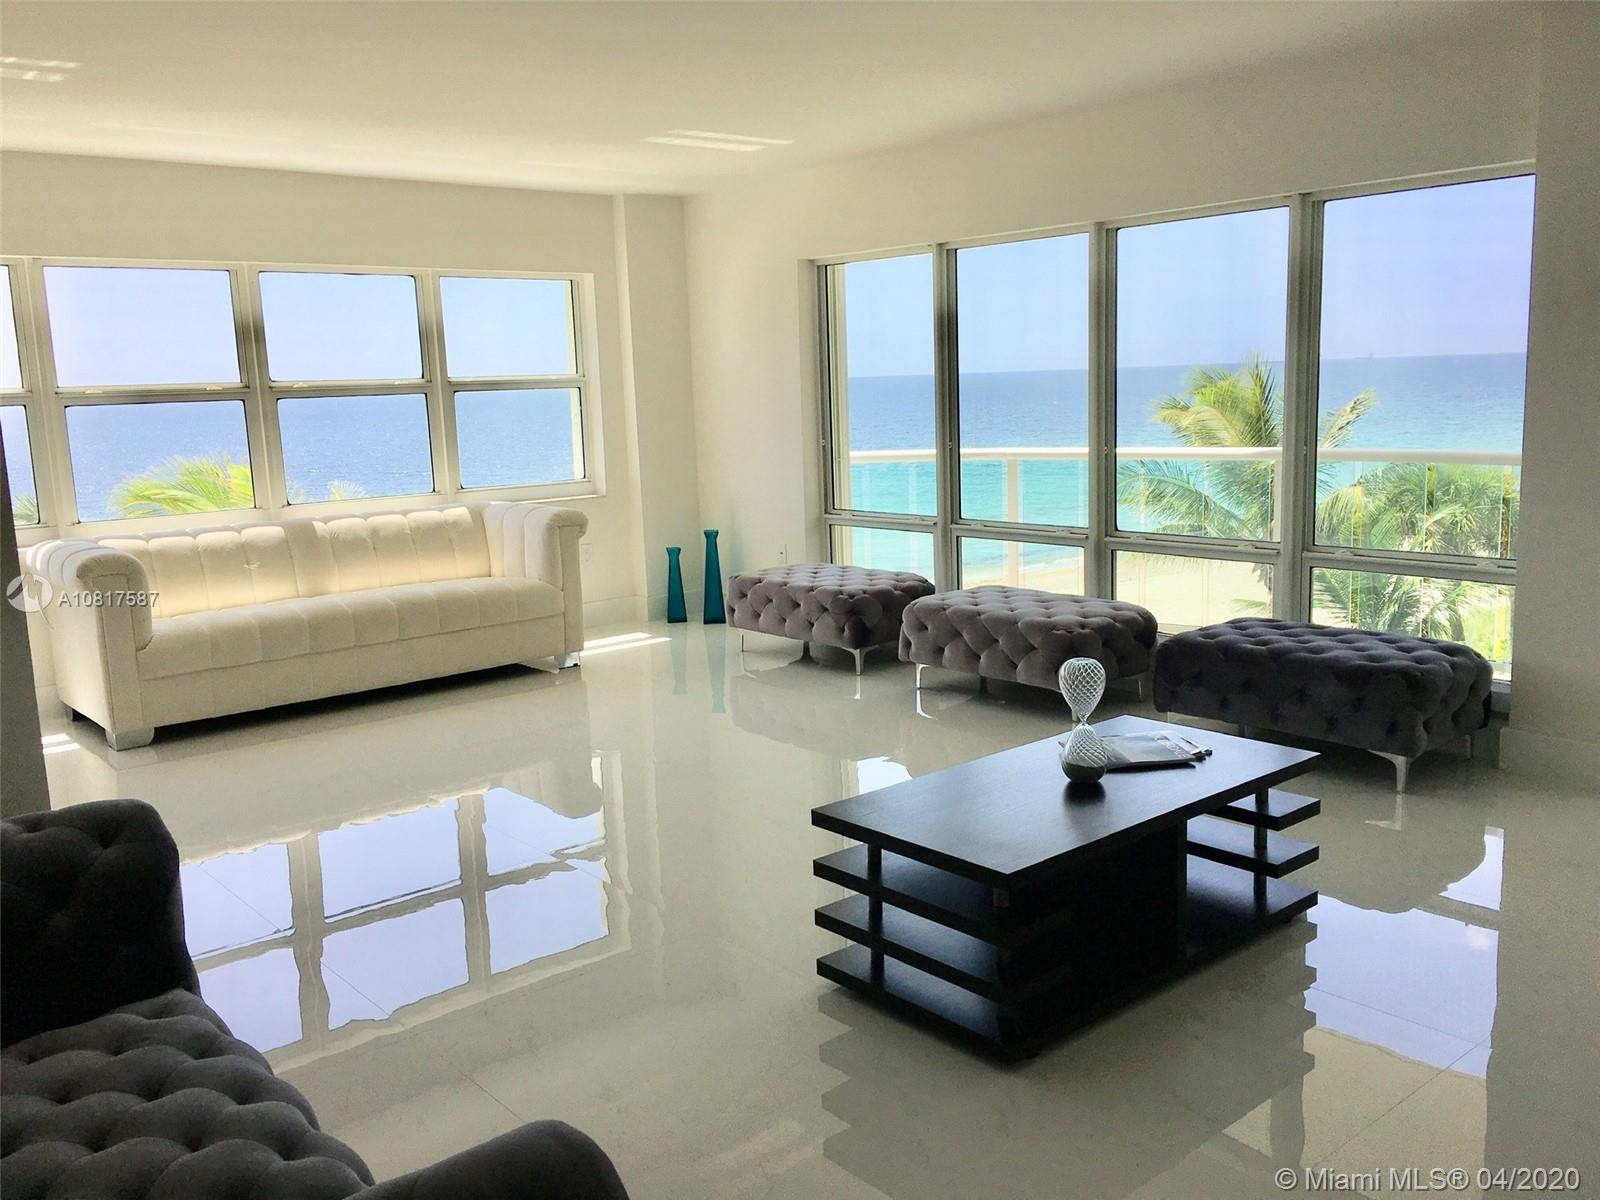 JUST REMODEL !!! BRAND NEW : PORCELAIN 32 x 32 CARRARA TILE , NEW APPLIANCES, NEW KTCHEN CABINETS, NEW BATHROOMS... ALL BRAND NEW ....... GREAT OCEAN VIEW !!